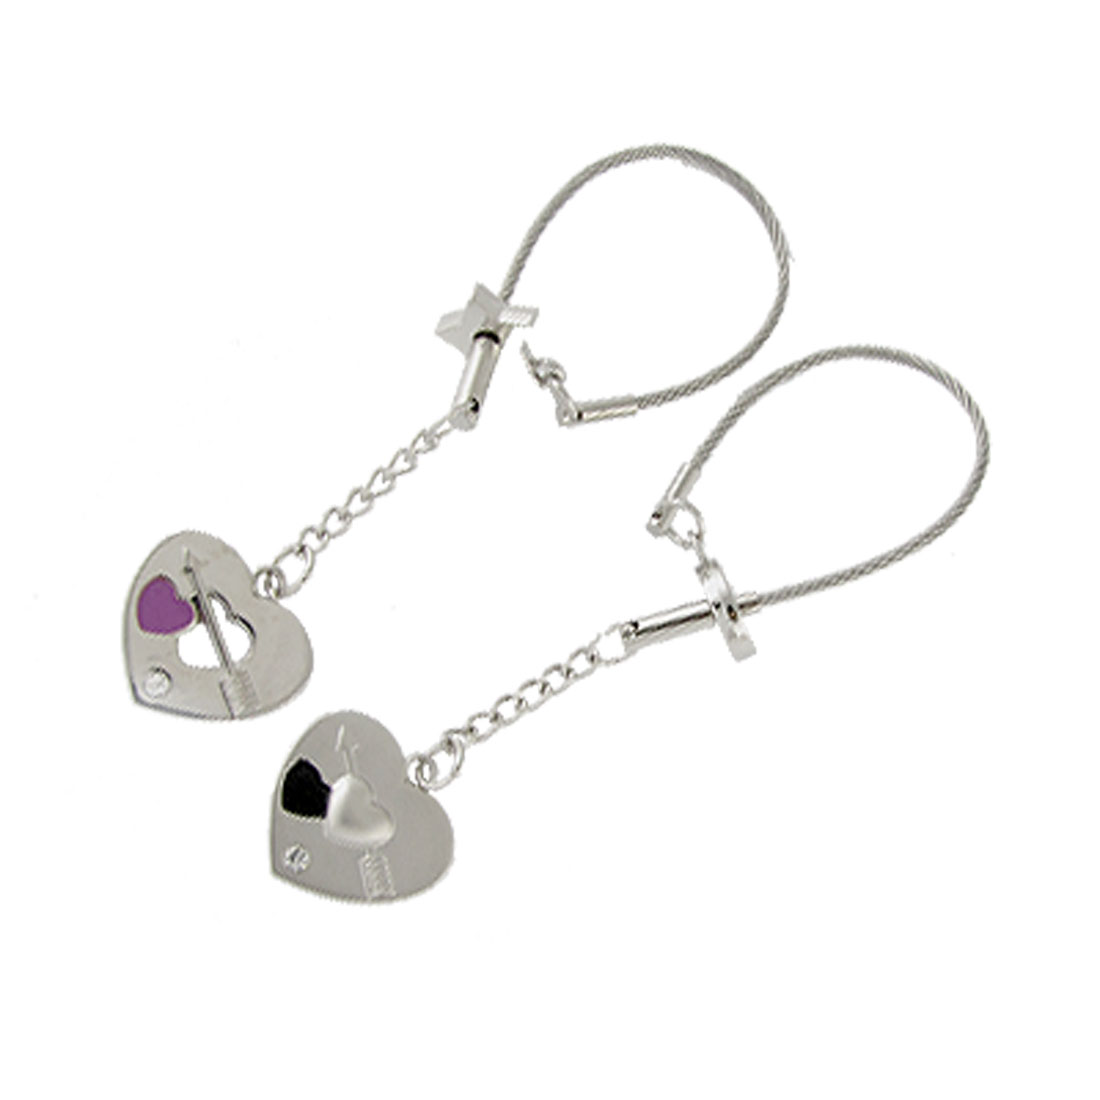 2 Pcs Metal Key Chain Ring with Heart Pendant for Lovers Silver Tone